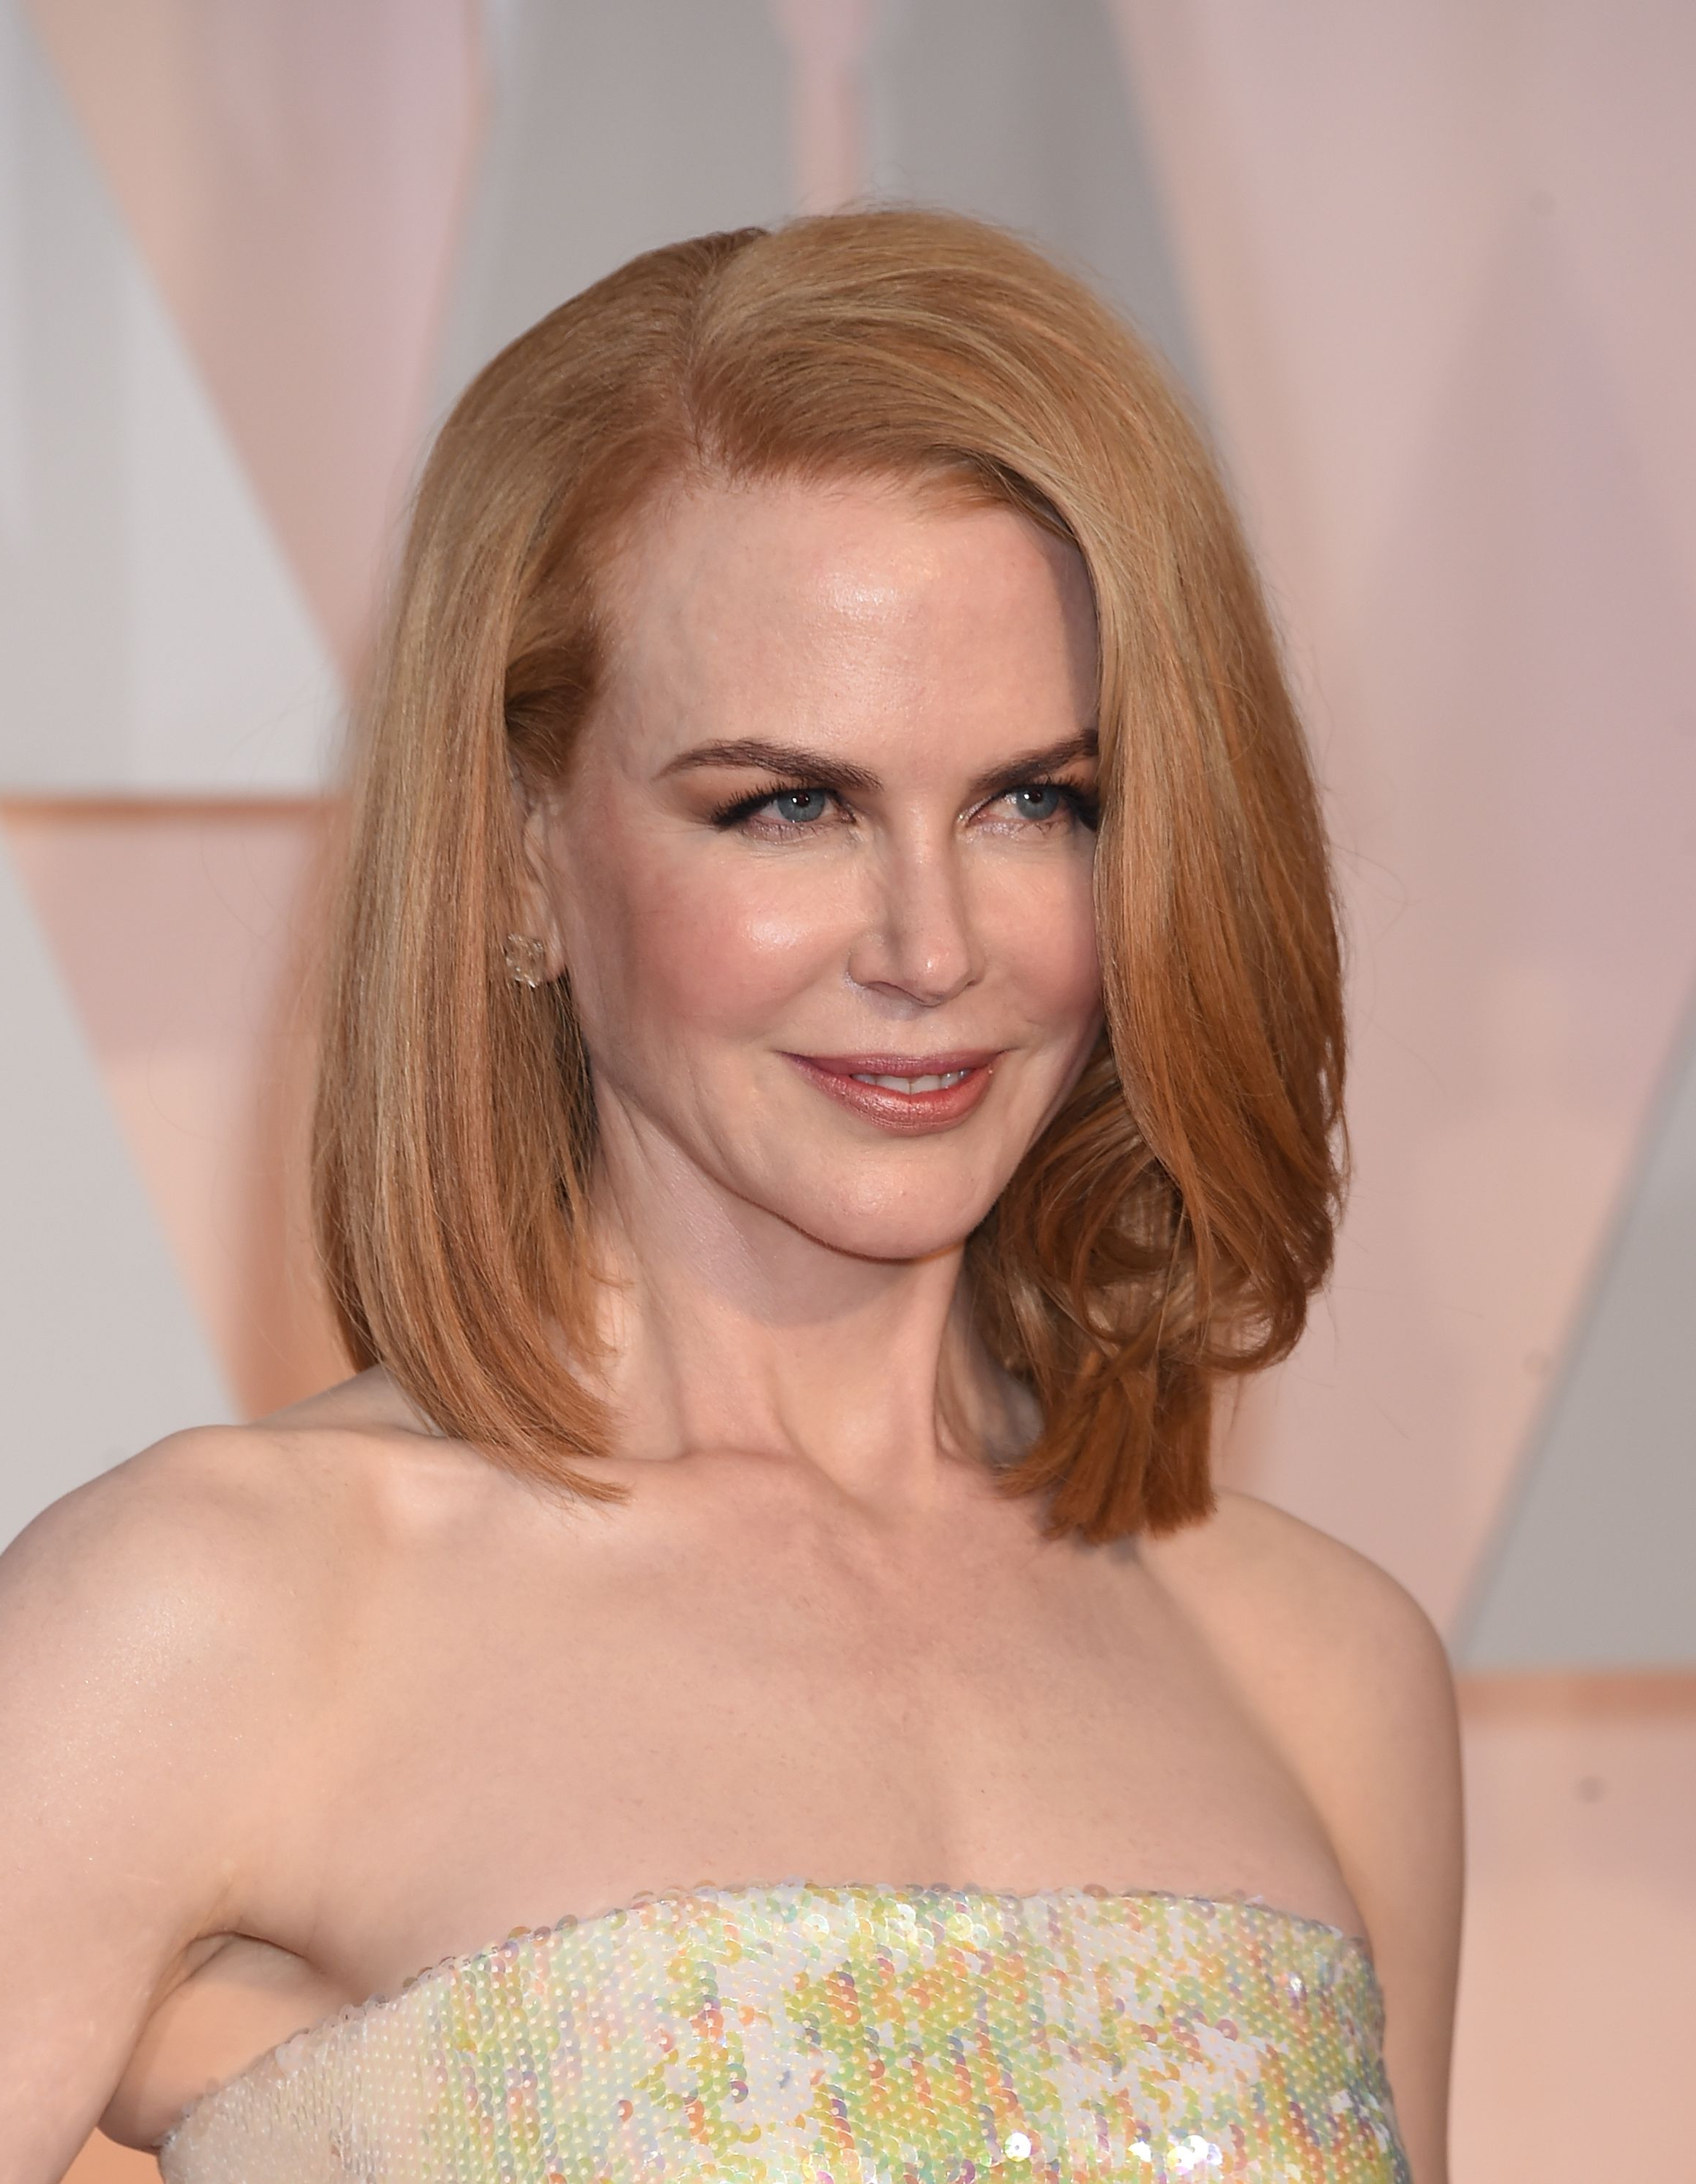 26 Gorgeous Strawberry Blonde Hair Color Ideas From Celebrities For 2017 Intended For Strawberry Blonde Short Hairstyles (View 17 of 25)